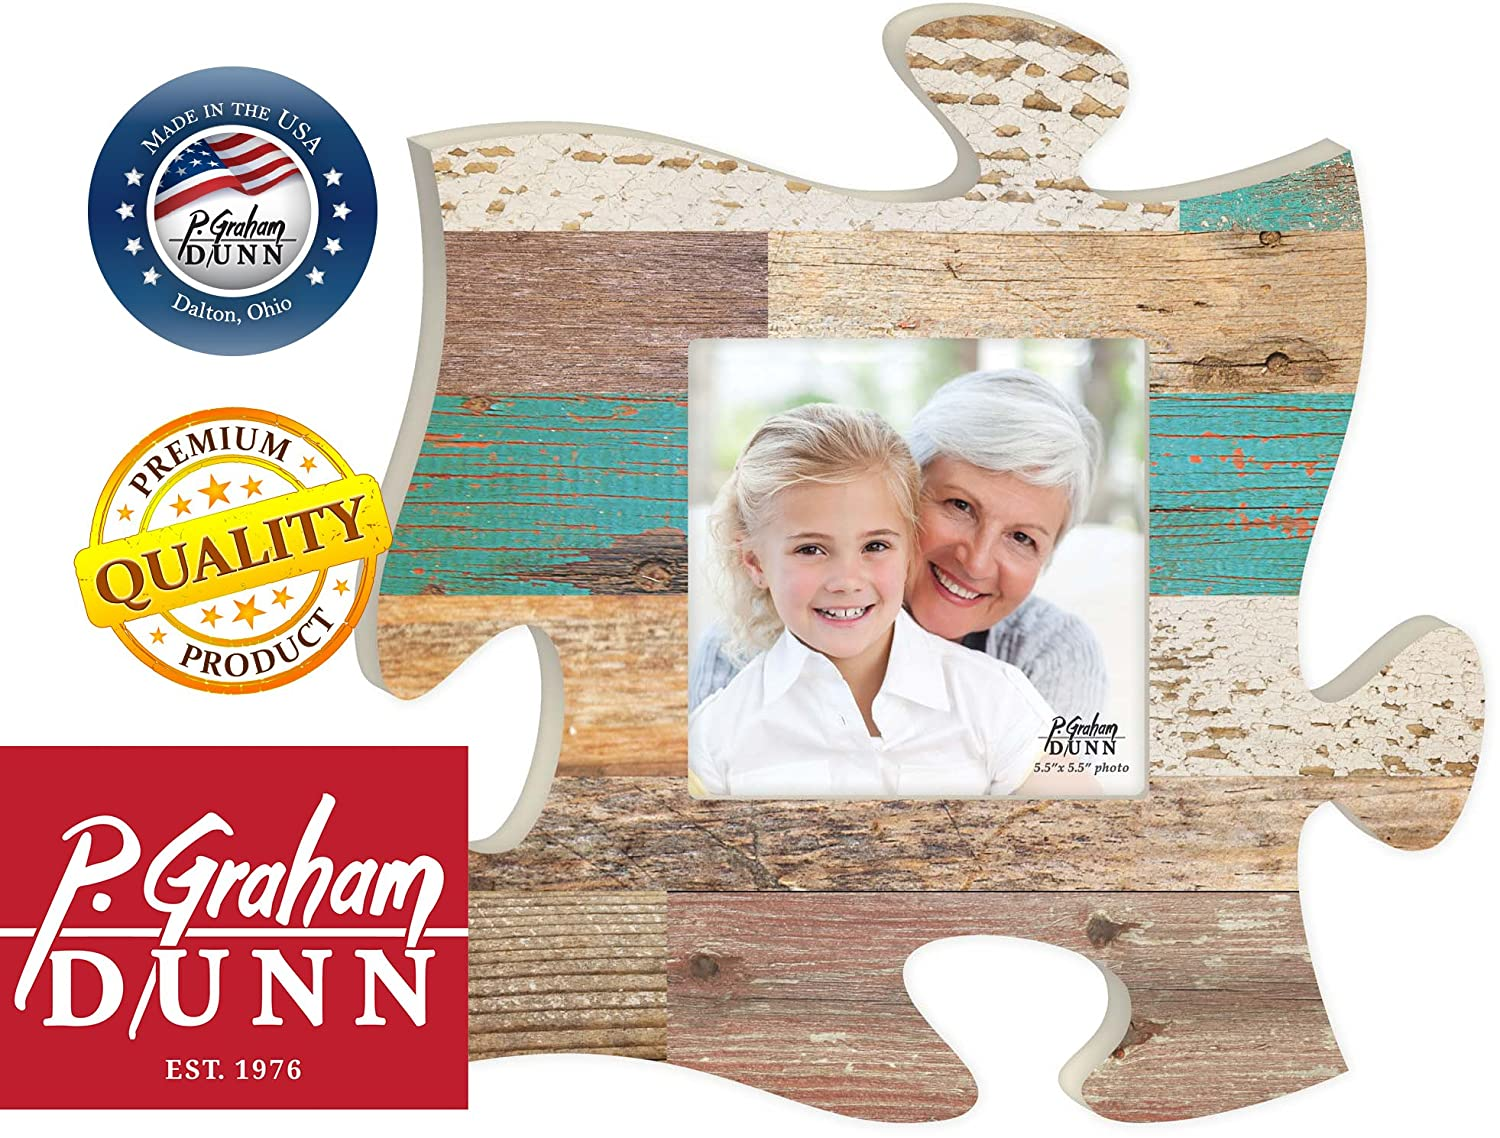 GRAHAM DUNN Teal Multicolor Distressed Wood Look 12 x 12 Wall Hanging Wood Puzzle Piece Photo Frame P